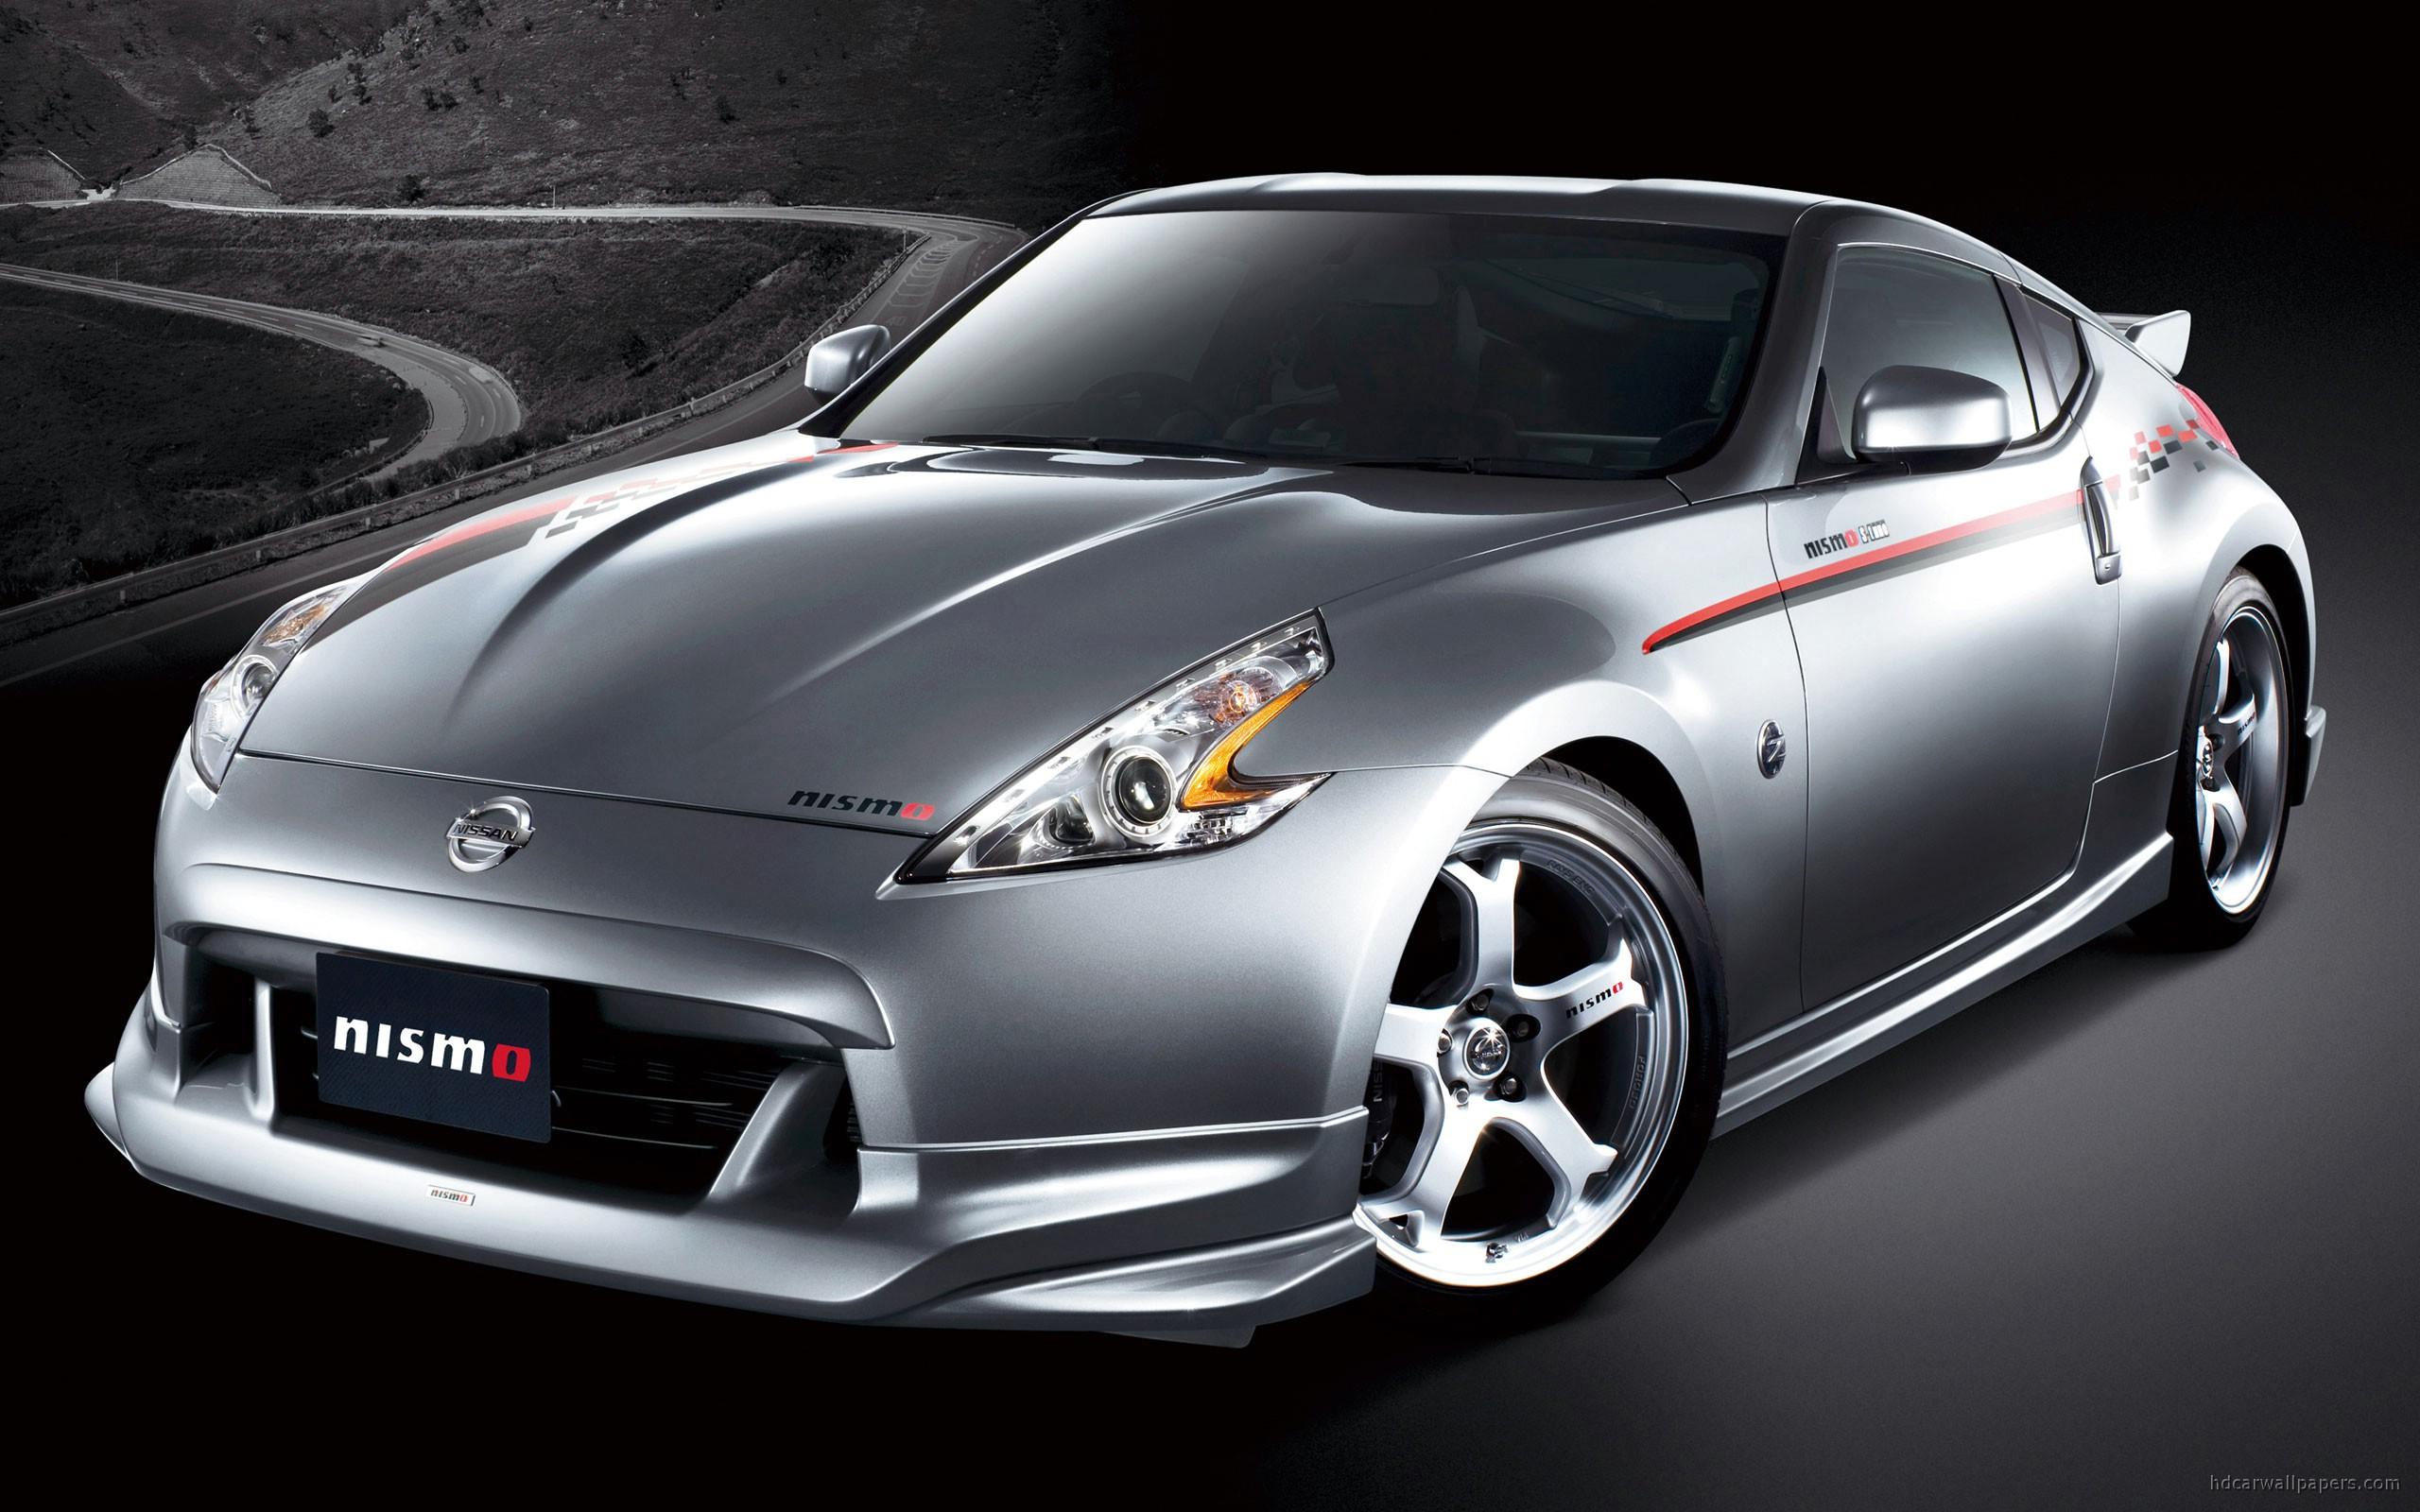 nissan 370z s tune wallpaper hd car wallpapers id 1364. Black Bedroom Furniture Sets. Home Design Ideas